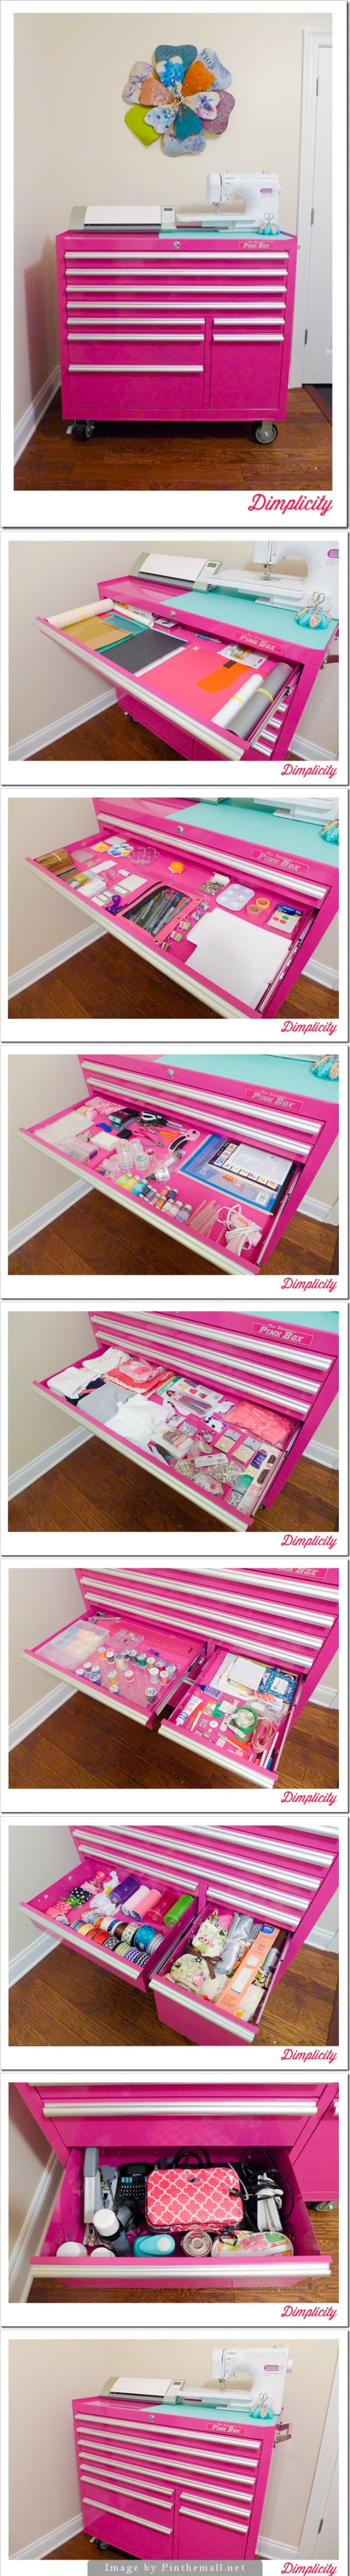 OMG I wantss!!!!! I love this craft storage idea from a toolbox. love the paint color. this would be great for stamping supplies.